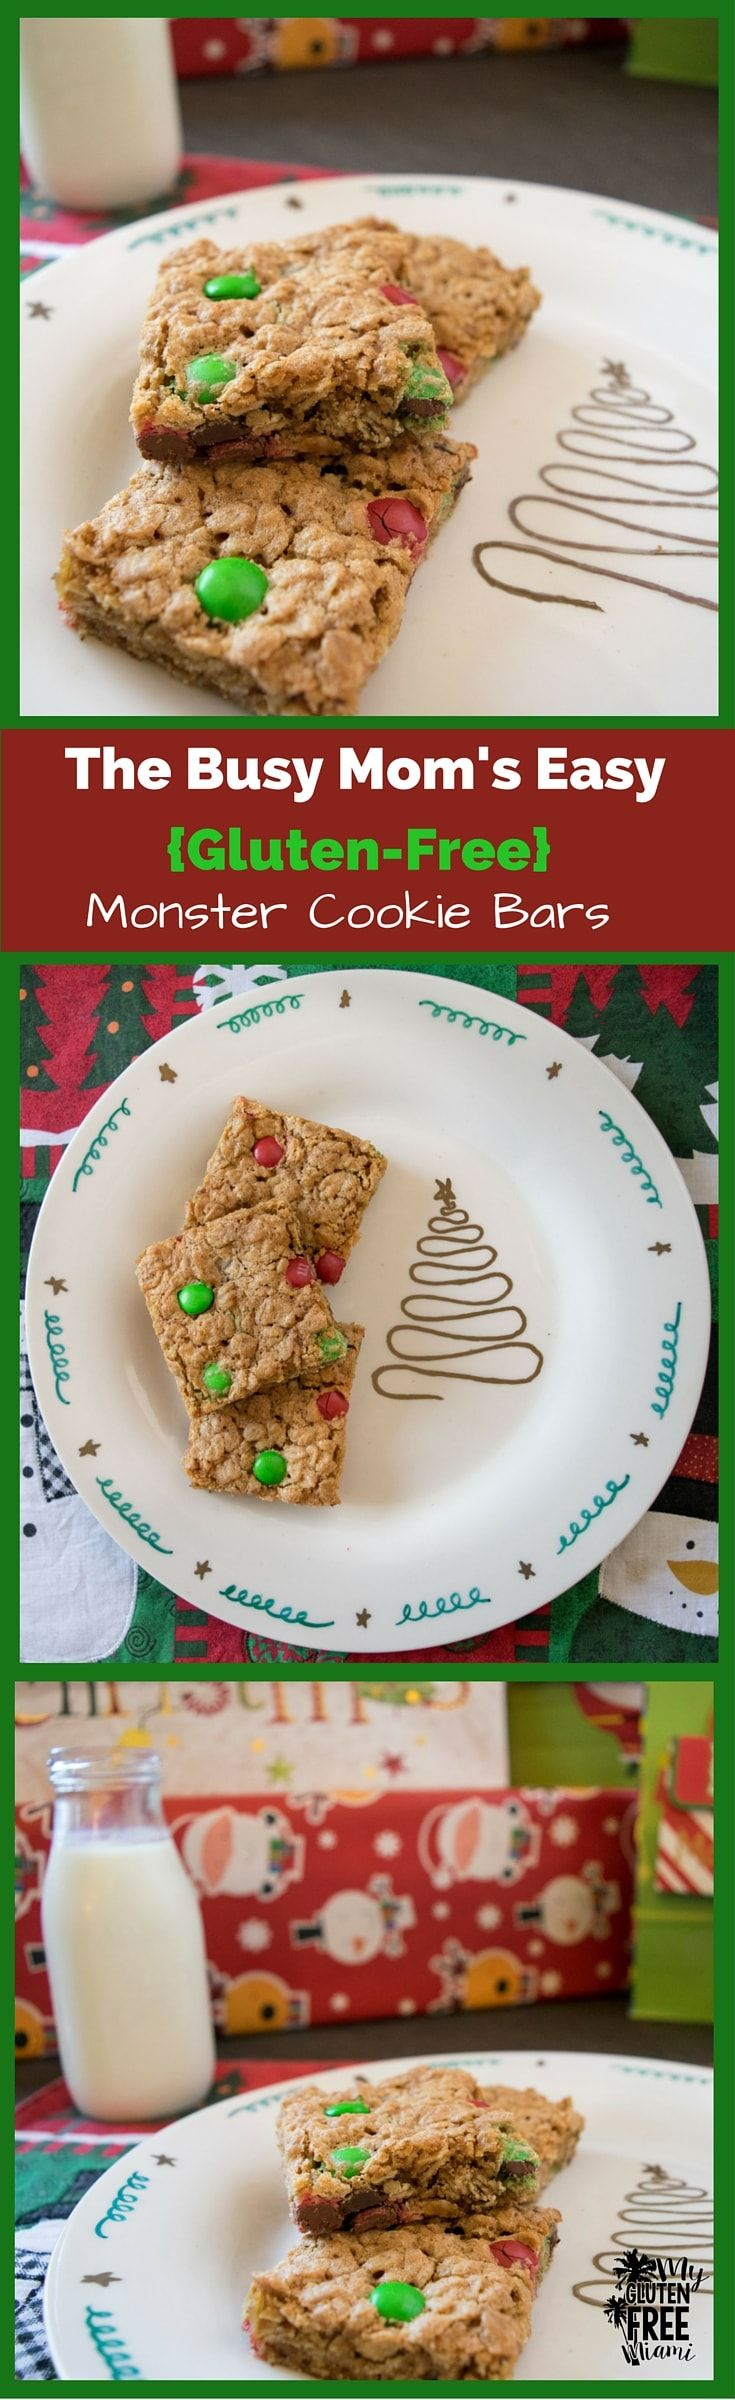 For those who want a delicious a gluten-free treat full of peanut butter, oats,  and chocolate, but don't have all day to spend in the kitchen, these are the perfect cookies. #glutenfree via @glutenfreemiami